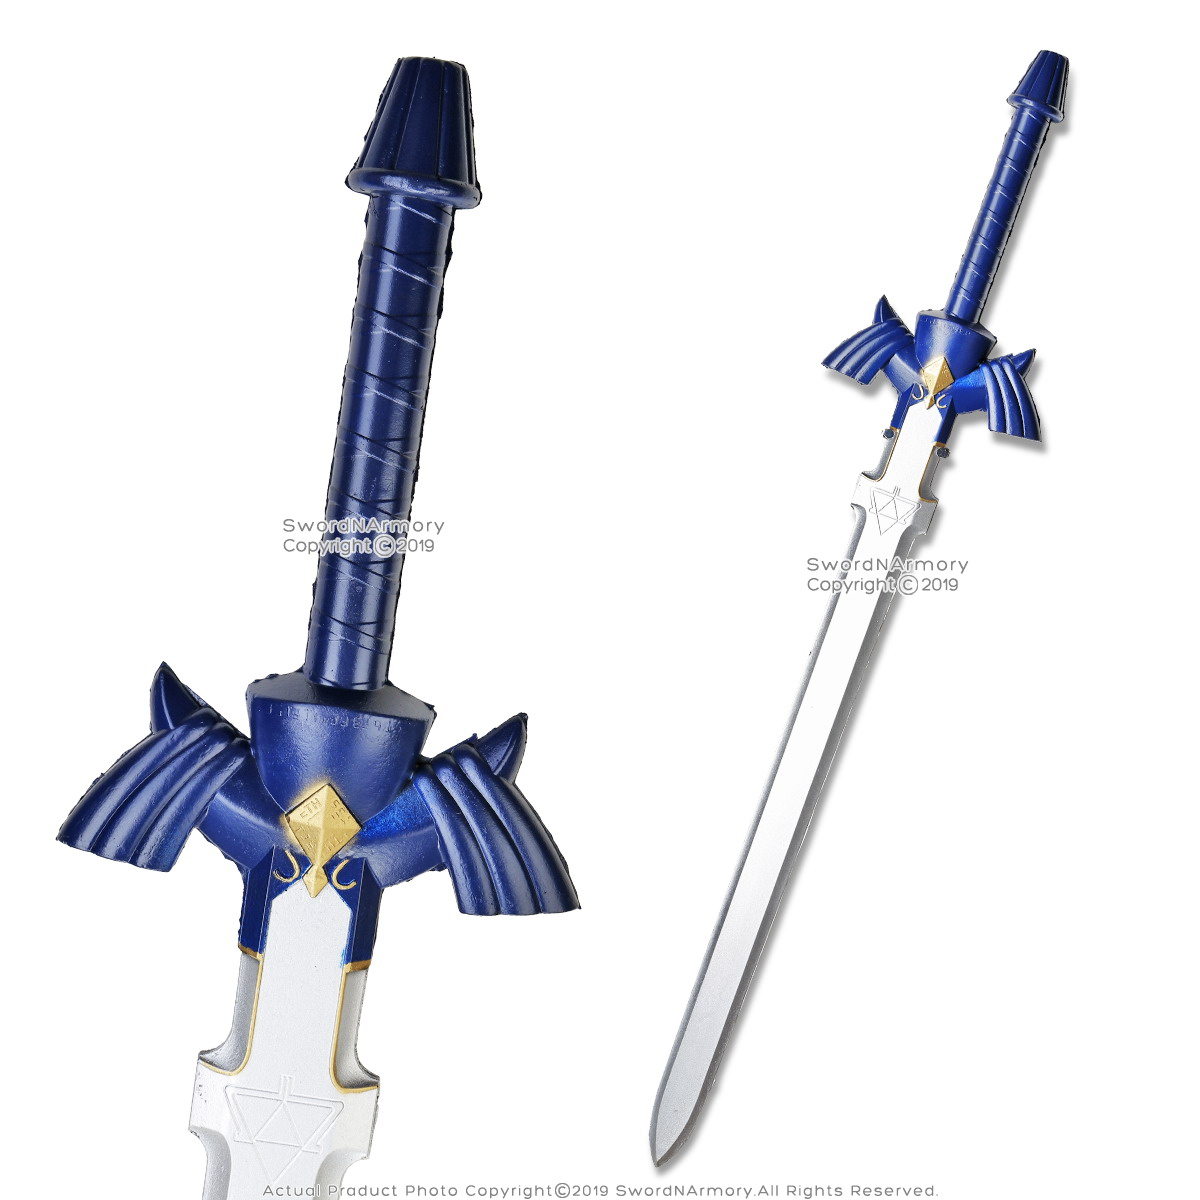 Confident Blue Foam Padded Zelda Link Twilight Princess Arming Sword Larp Cosplay Collectibles Tv, Film & Game Replica Blades